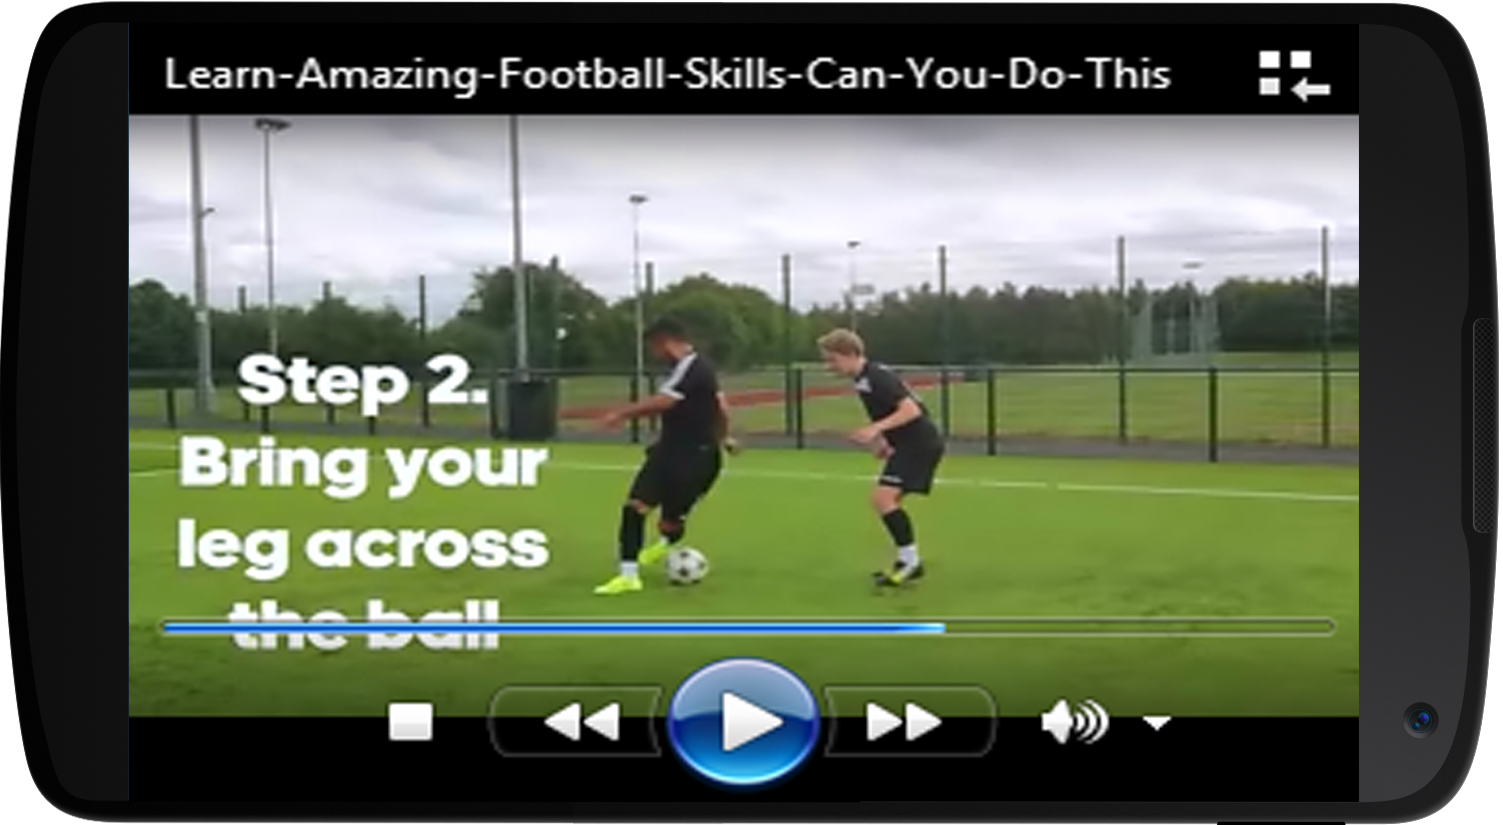 skilltwins tutorial android apps on google play skilltwins tutorial screenshot